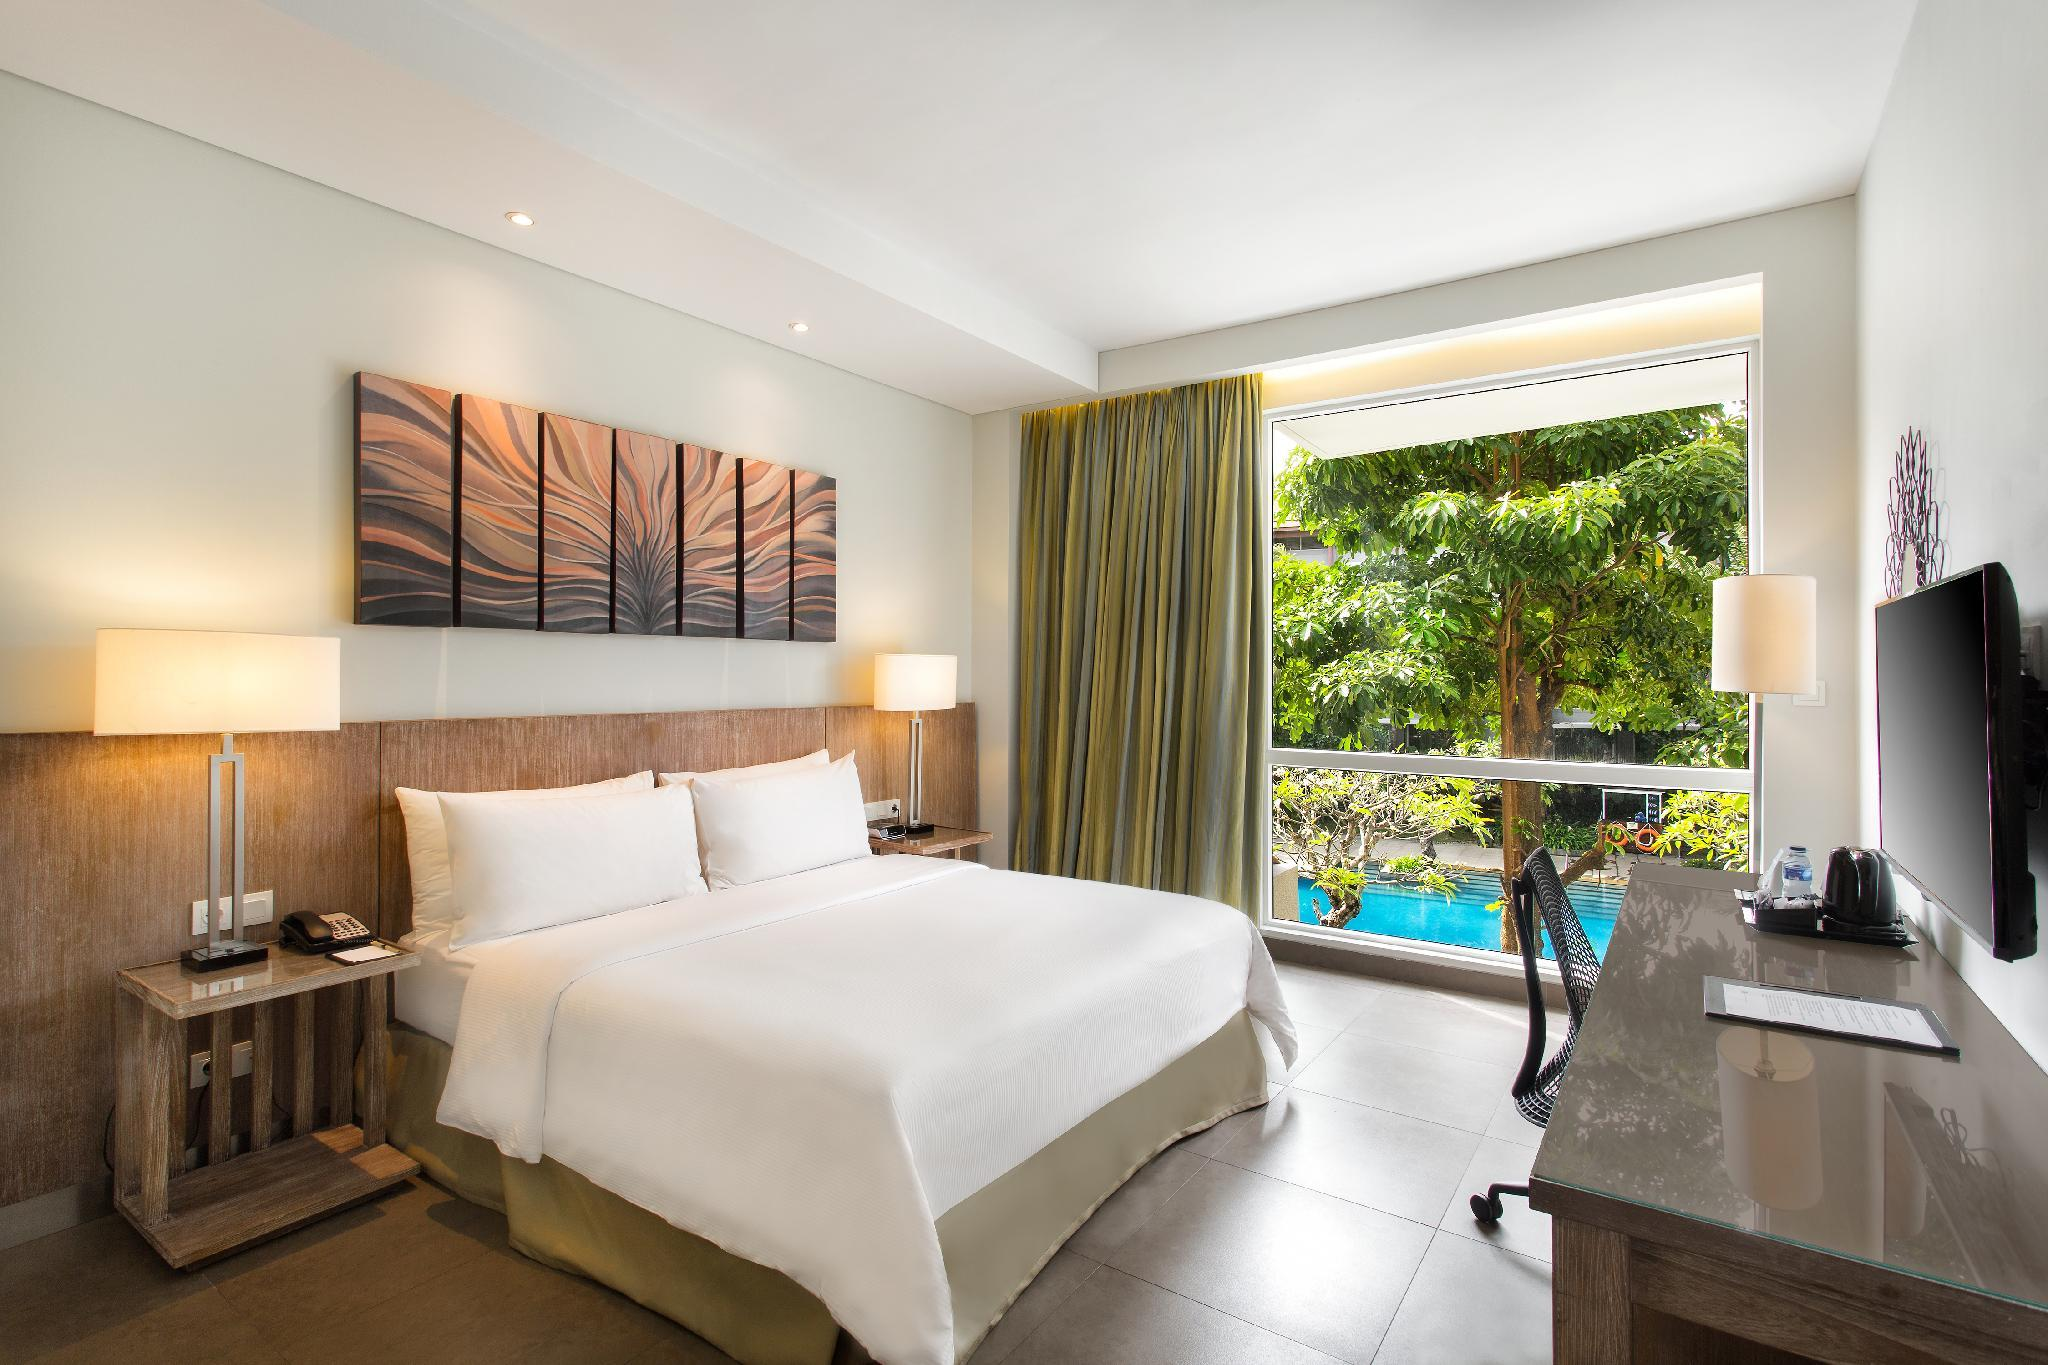 King Room with Pool View